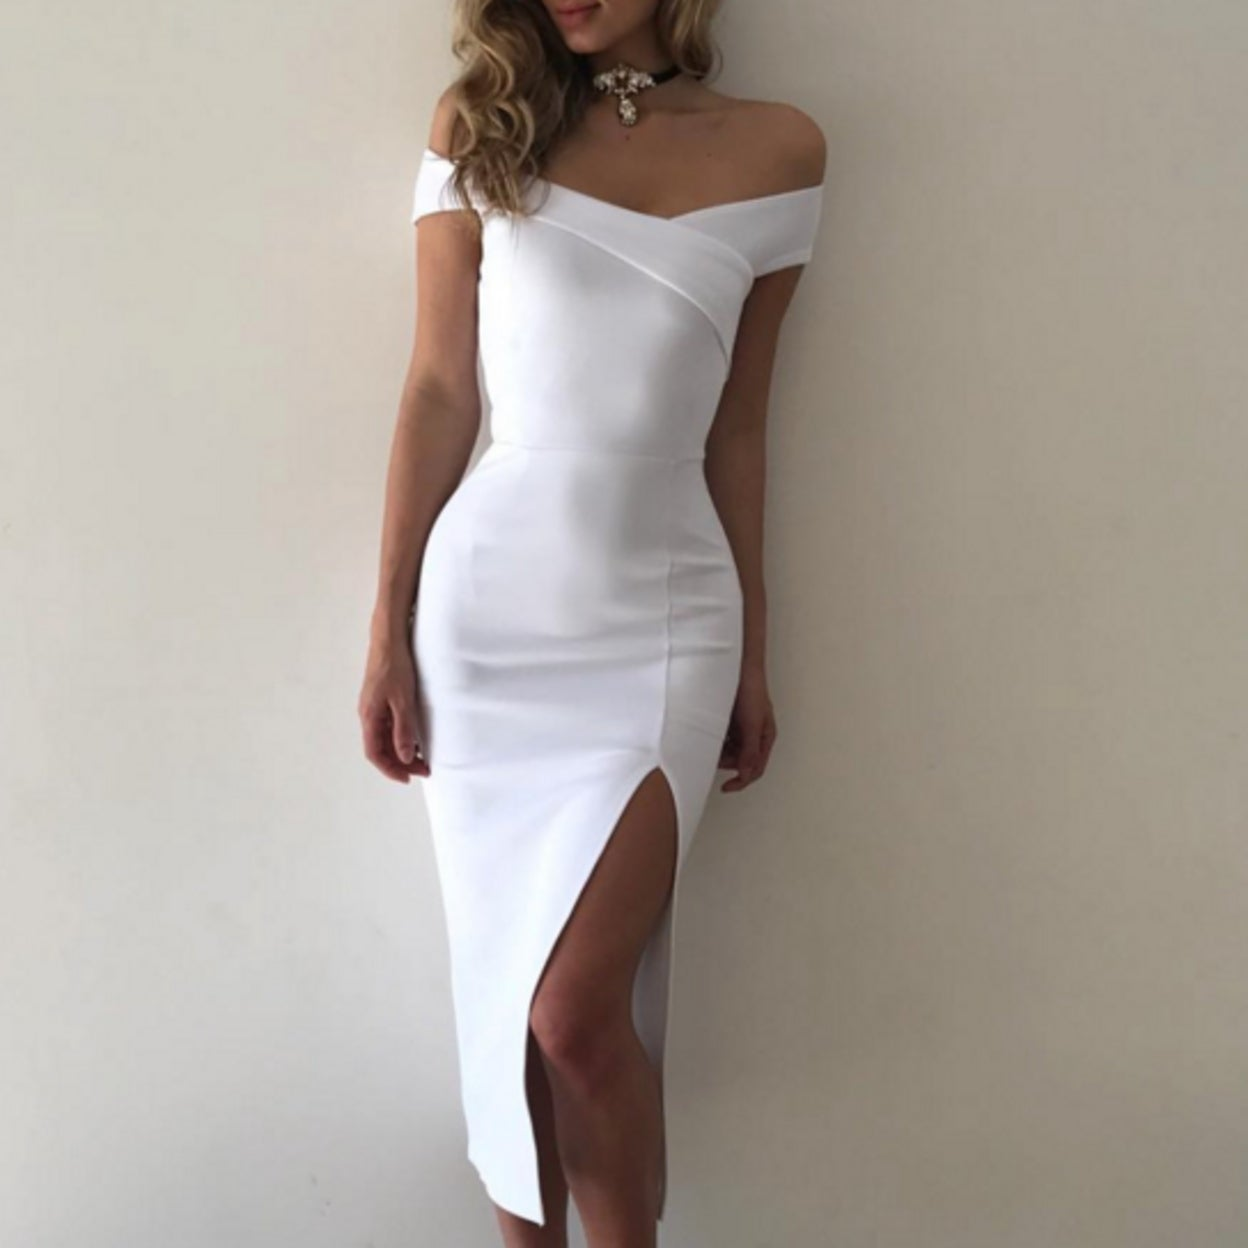 42bc2867190 Shop Elegant Summer Sexy Women Bodycon Dresses Off Shoulder Side Slit Plus  Size Dress - Free Shipping On Orders Over  45 - Overstock - 23017605